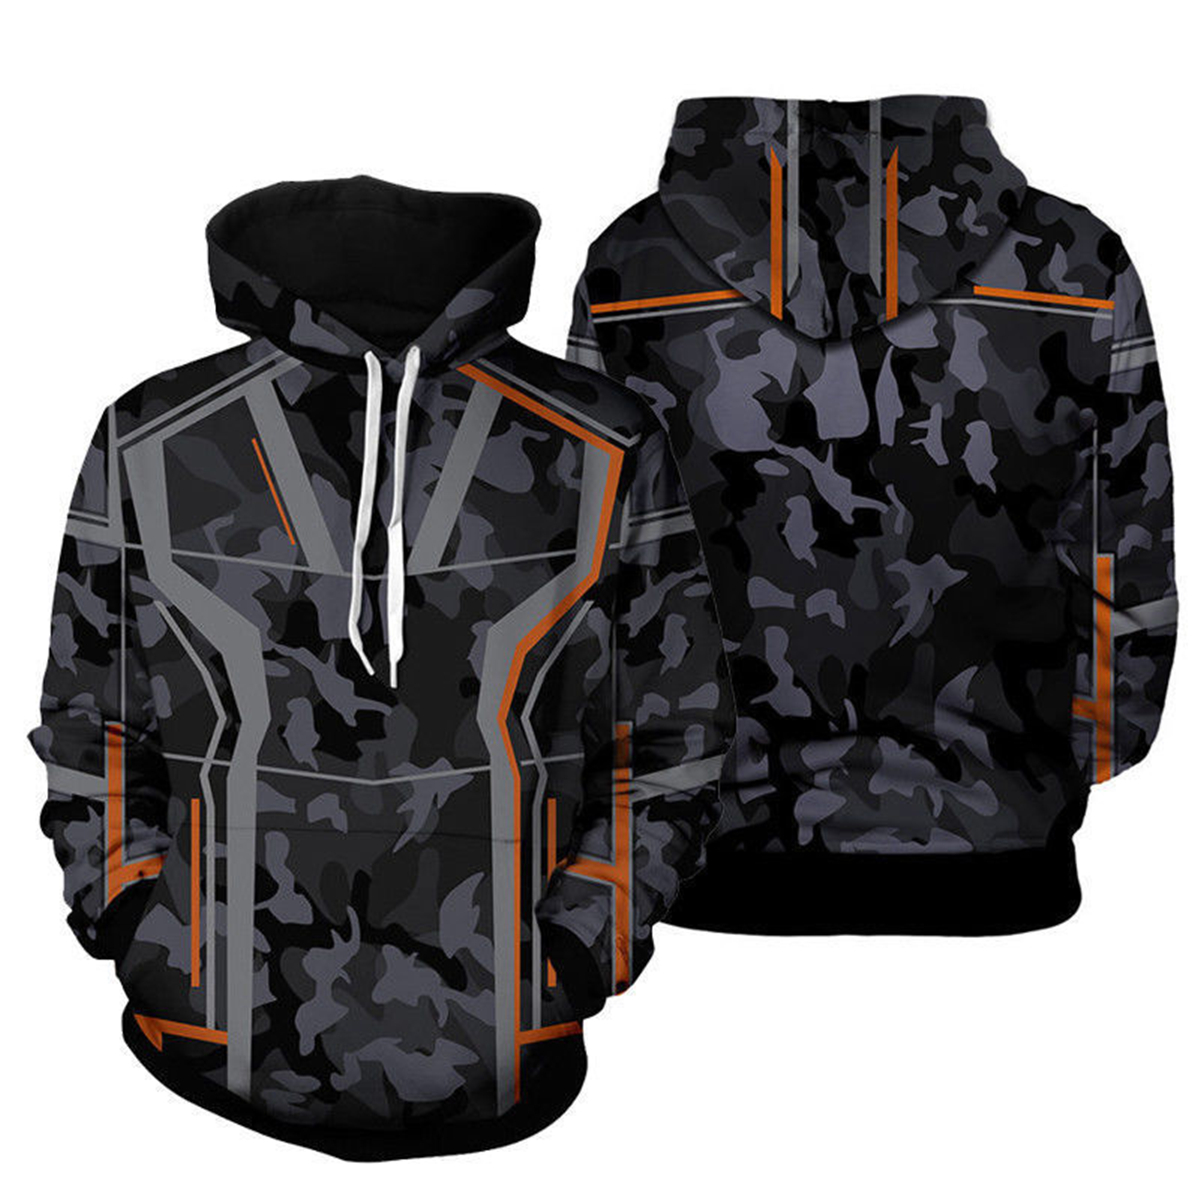 Avengers Infinity War Costume Iron Man Tony Stark Camouflage Hoodie Pullovers